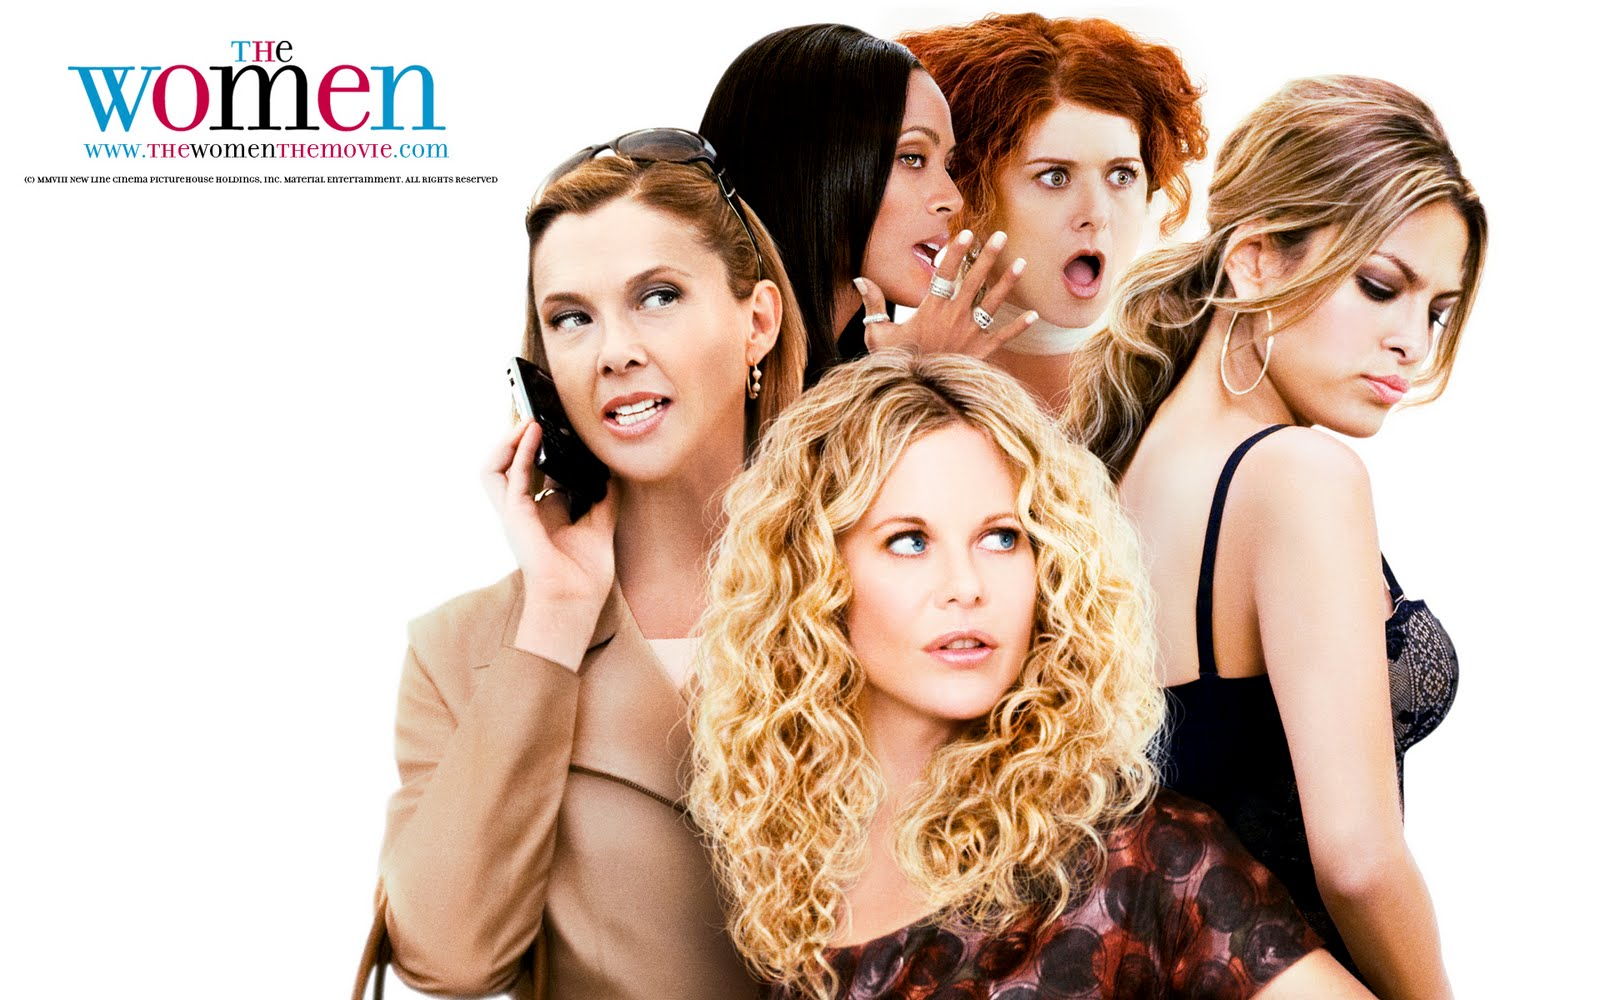 http://2.bp.blogspot.com/-EQ41nUEx1Rk/Tw3nS3lz1PI/AAAAAAAAB_g/0bkkABObQYU/s1600/Meg_Ryan_in_The_Women_Wallpaper_2_1280.jpg